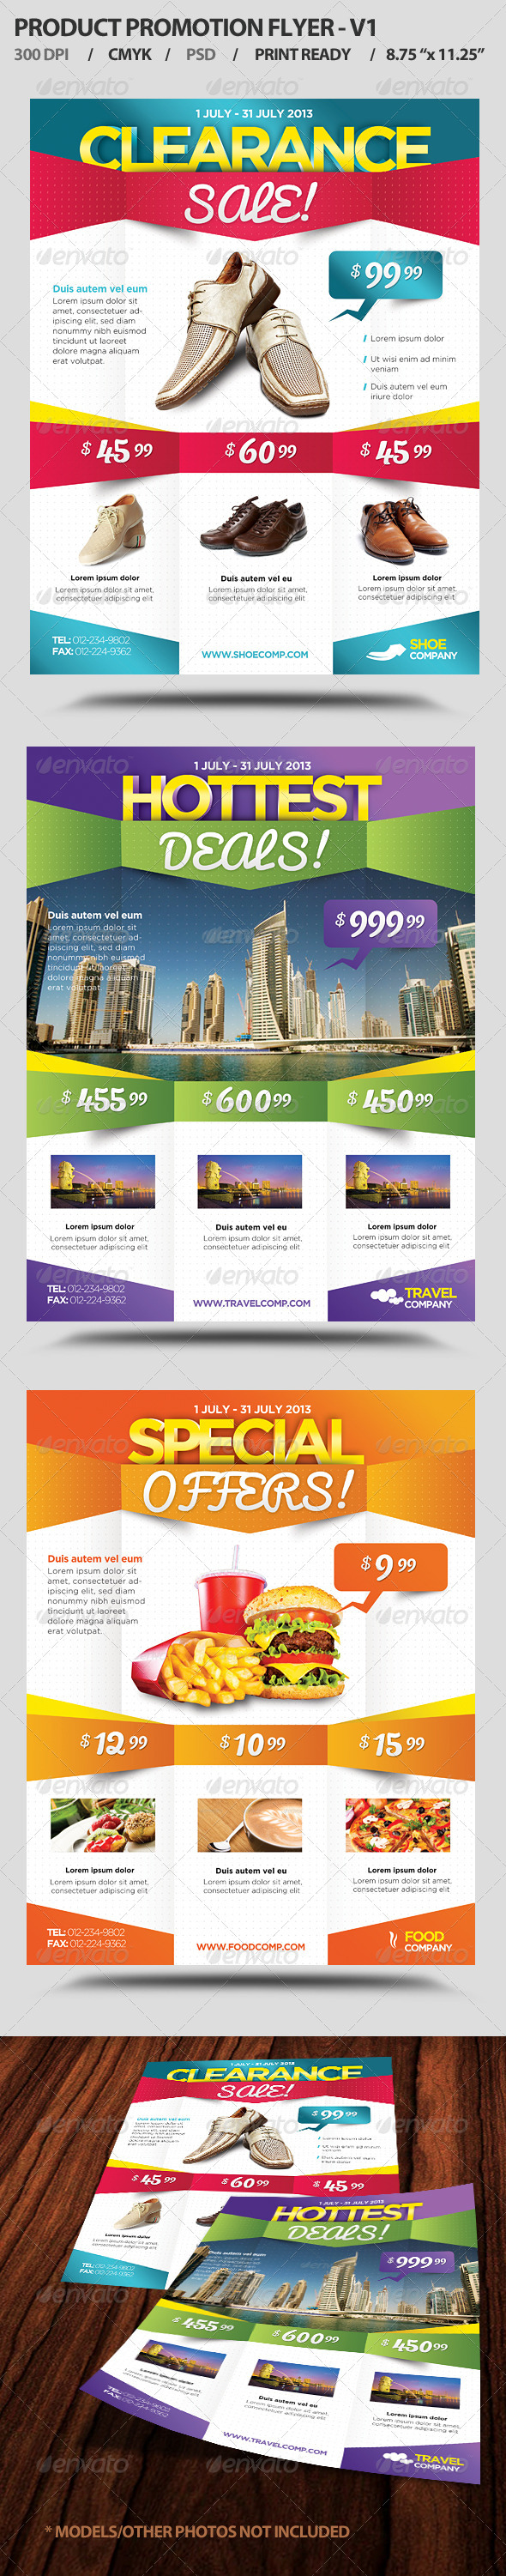 GraphicRiver Product Promotion Flyer V1 4599847